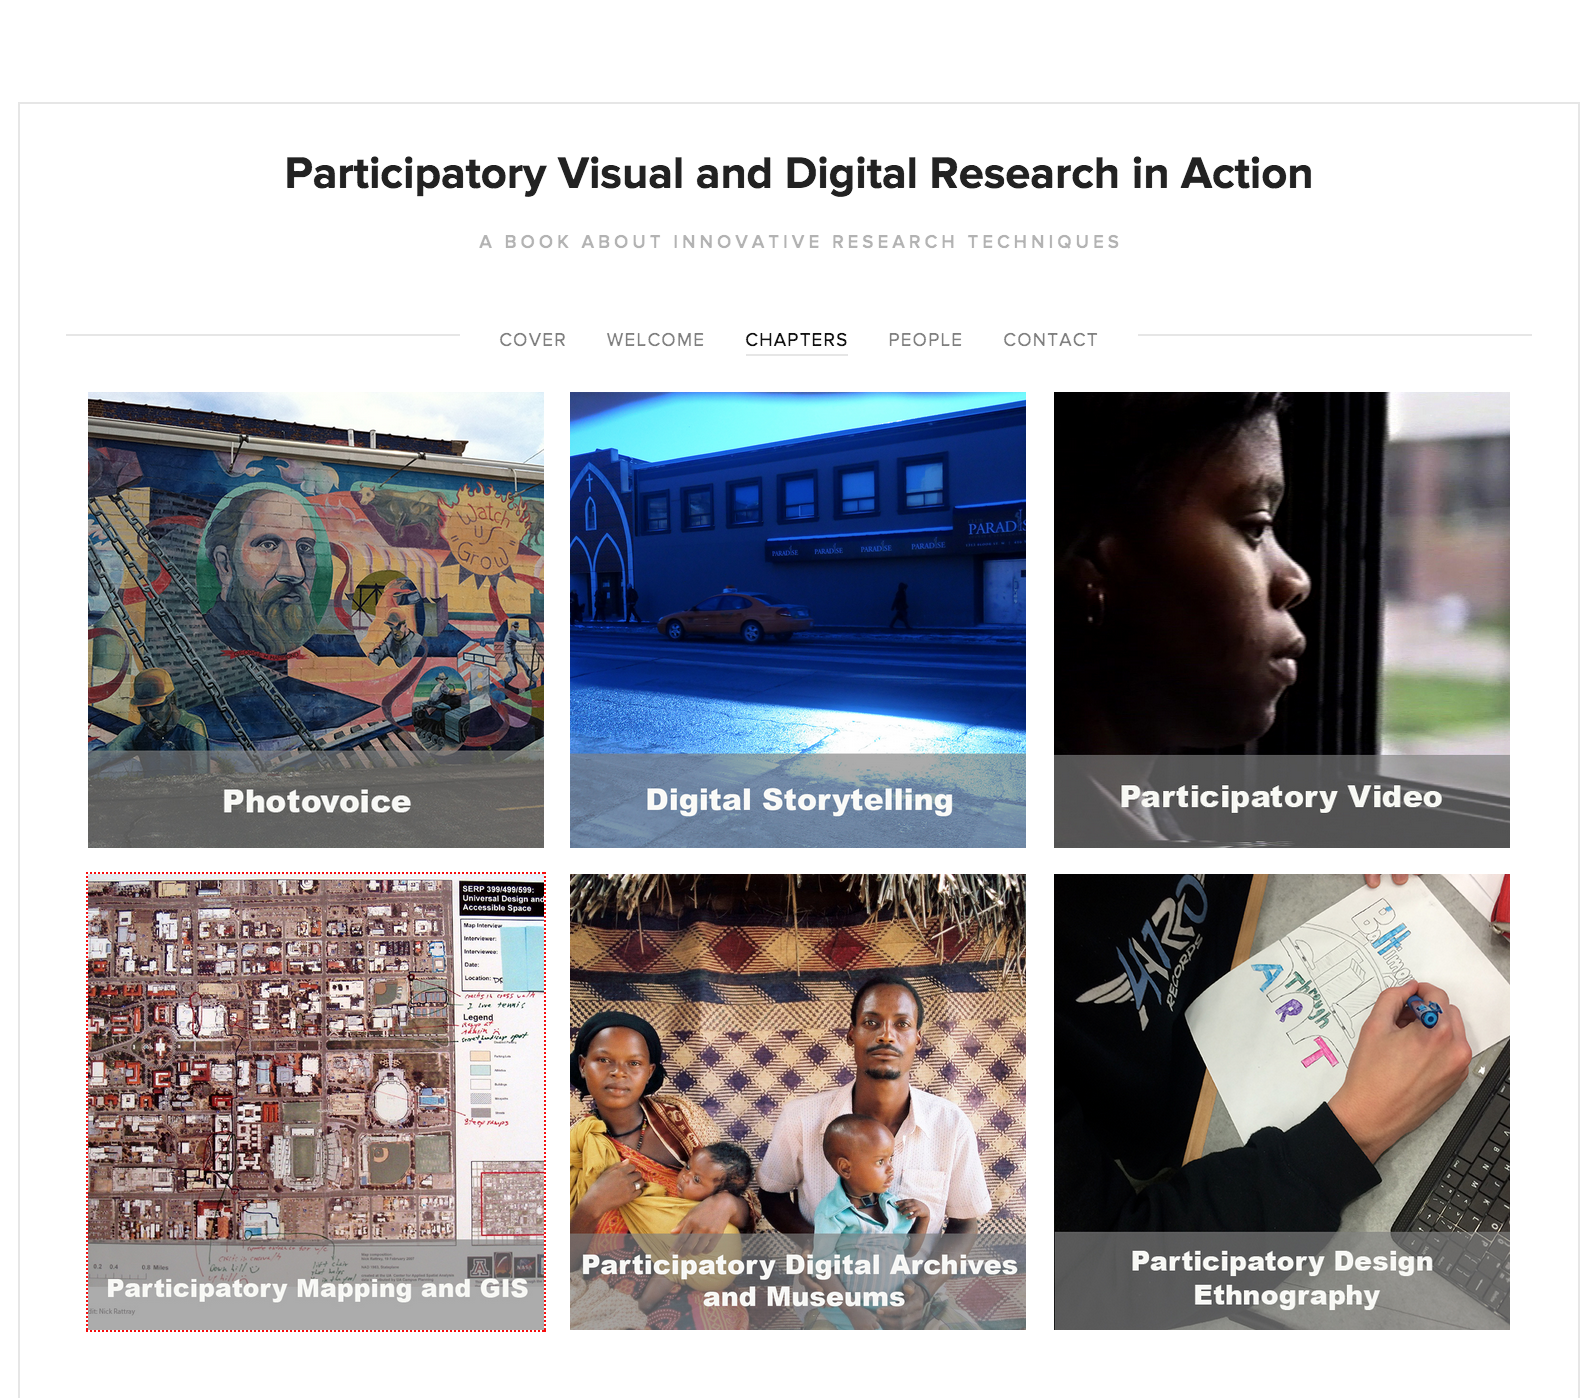 Featured on  Participatory Visual and Digital Research in Action website the 'Participatory Design Ethnography' section